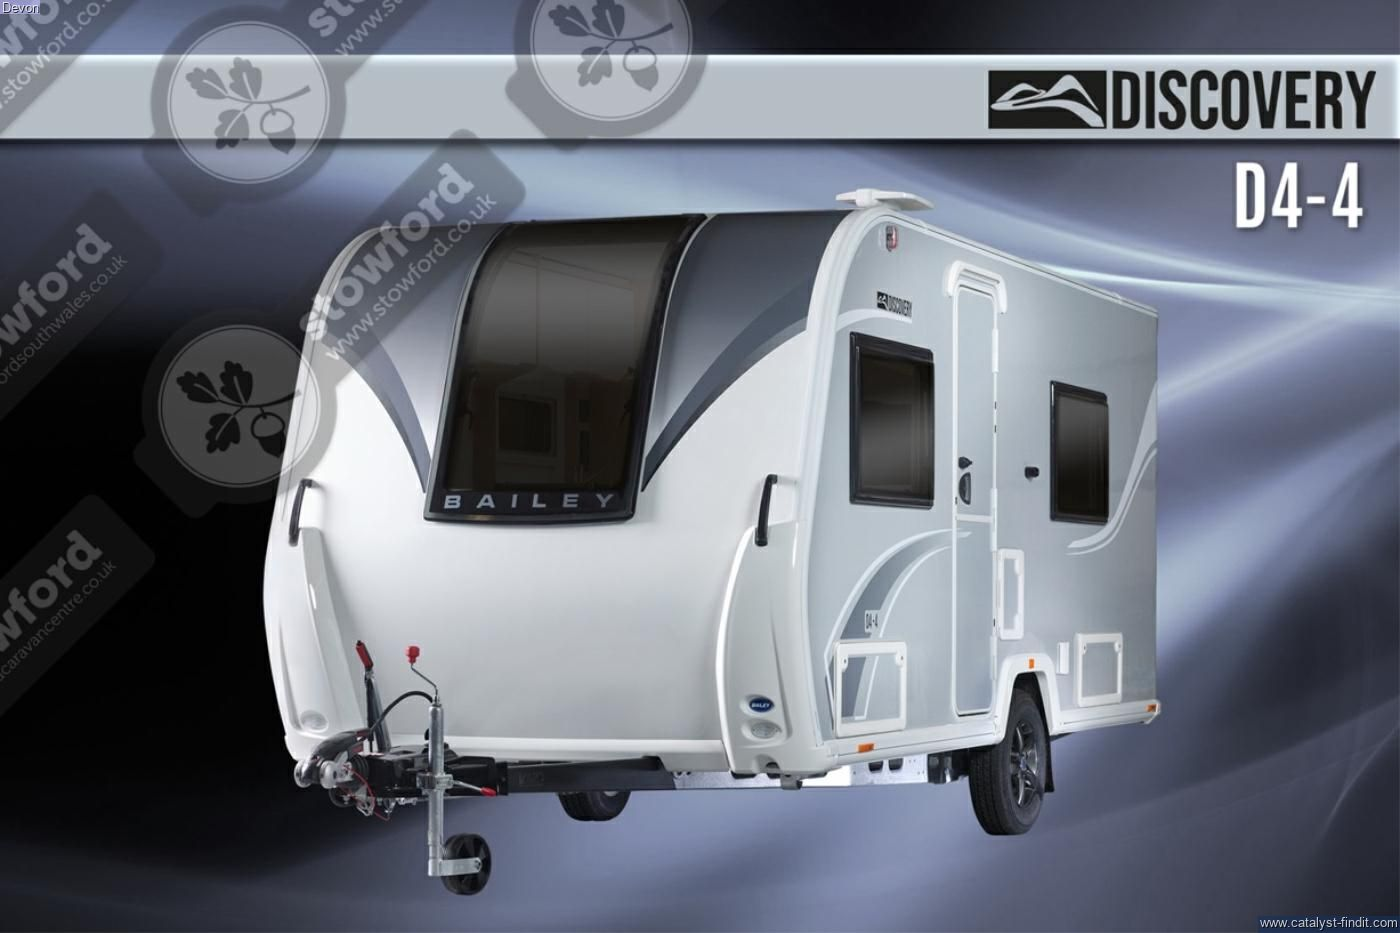 Bailey Discovery D4-4 2021